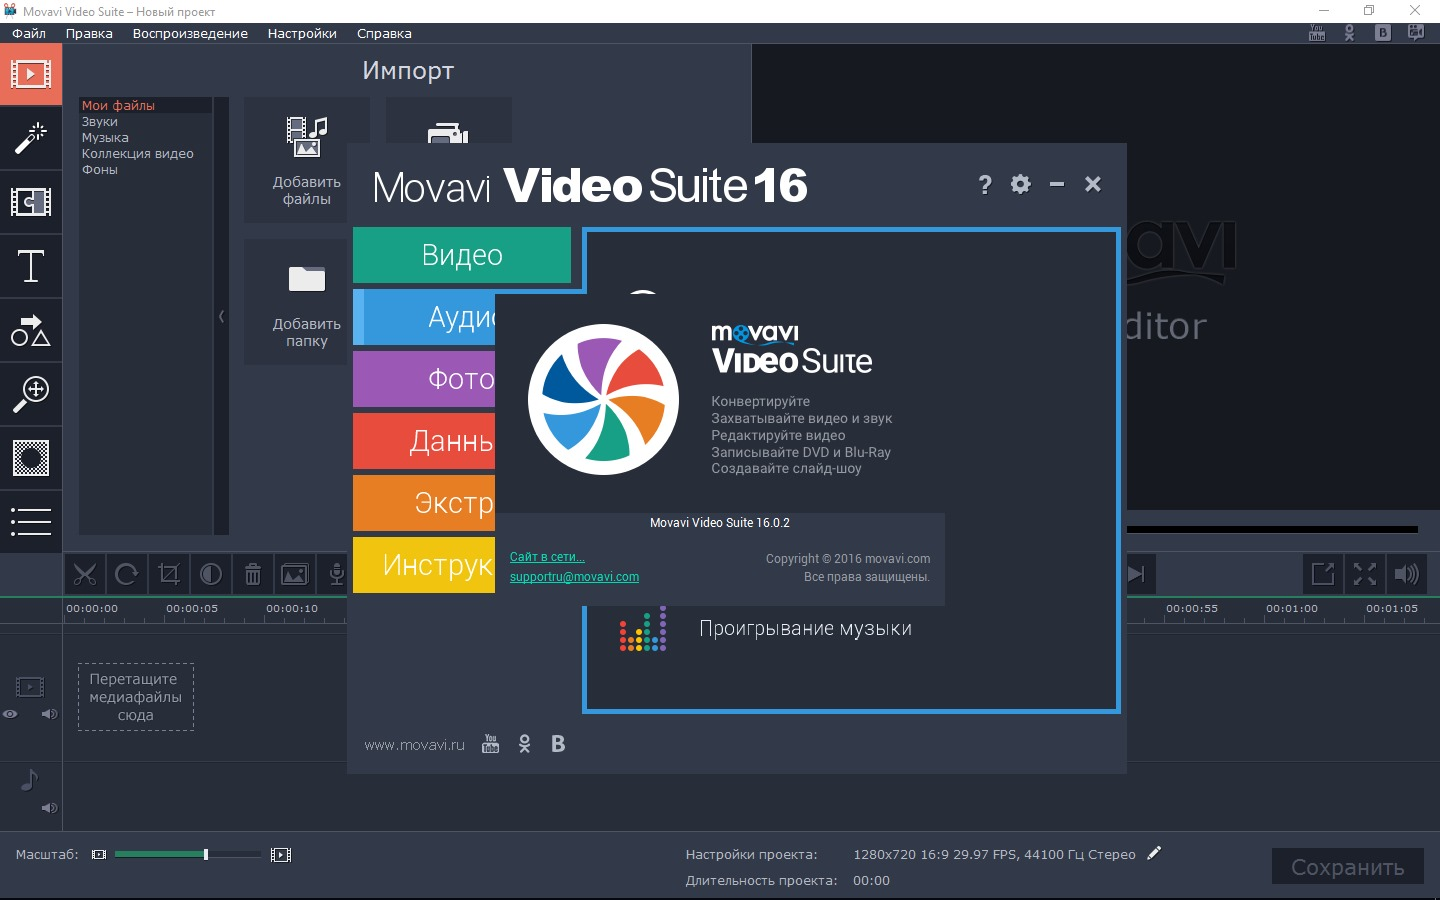 Movavi Video Suite 16.0.2 (2016) MULTi / Русский